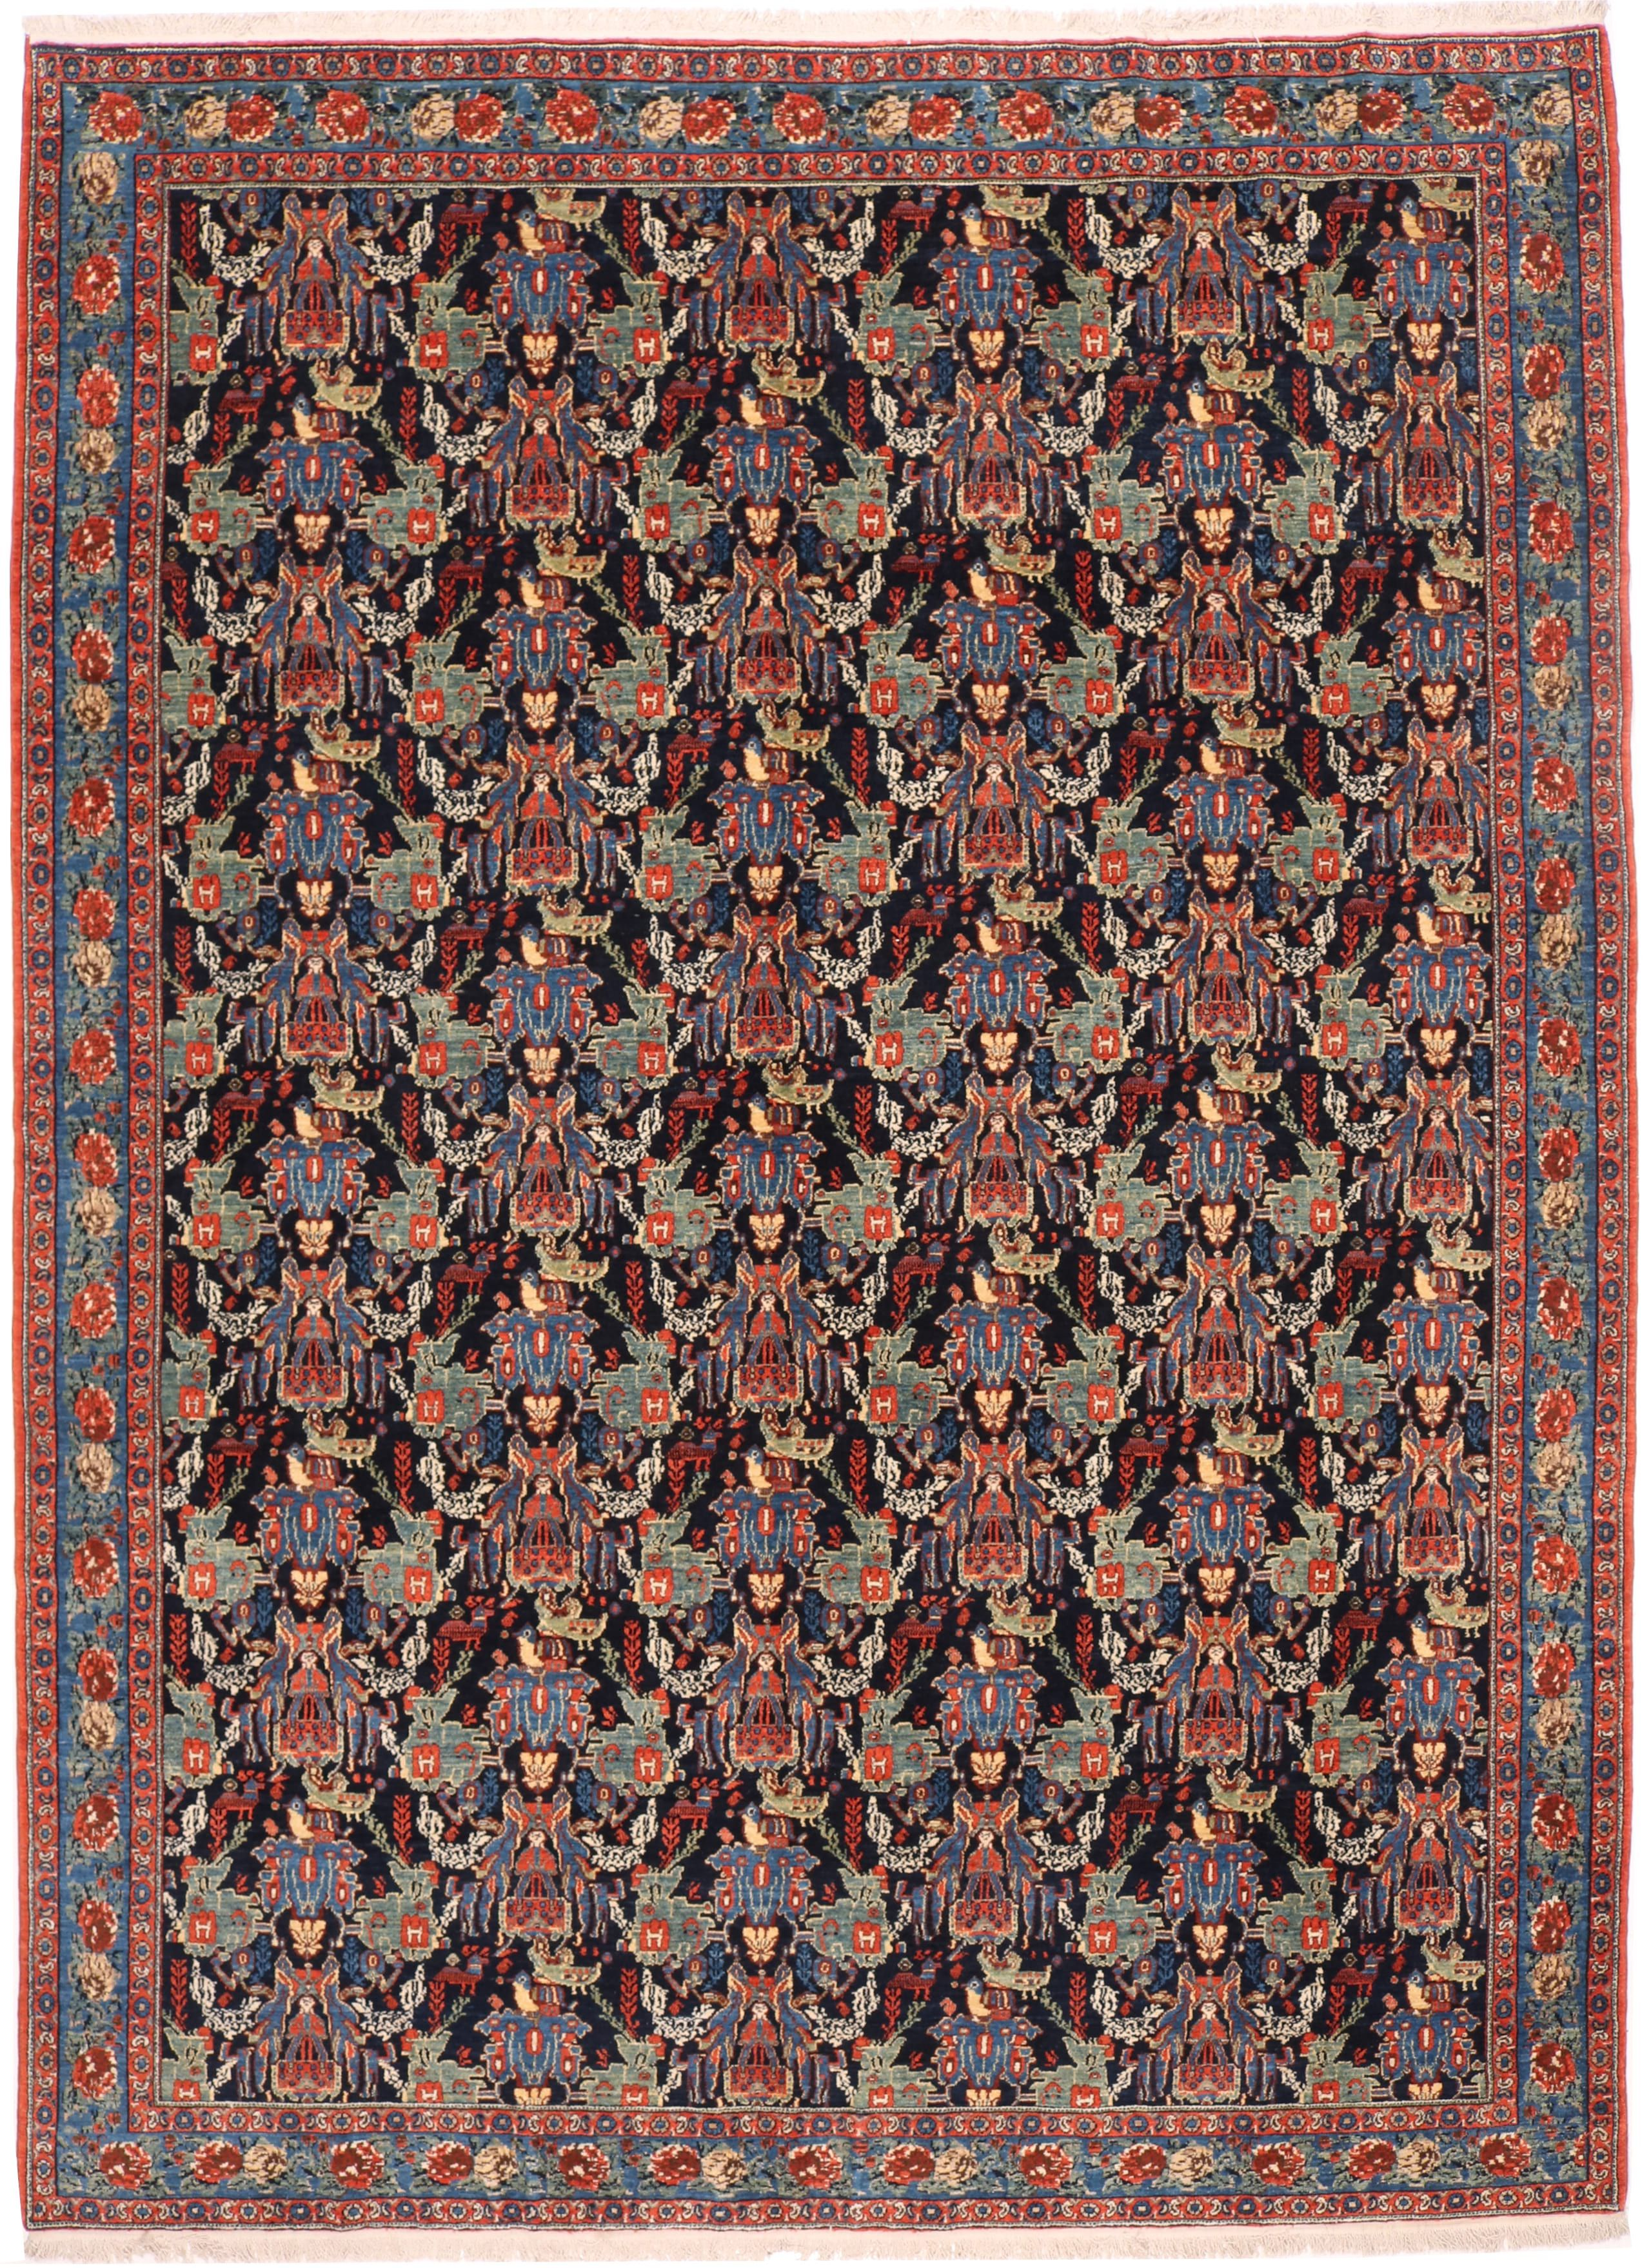 Persian Kurdish Senneh rug